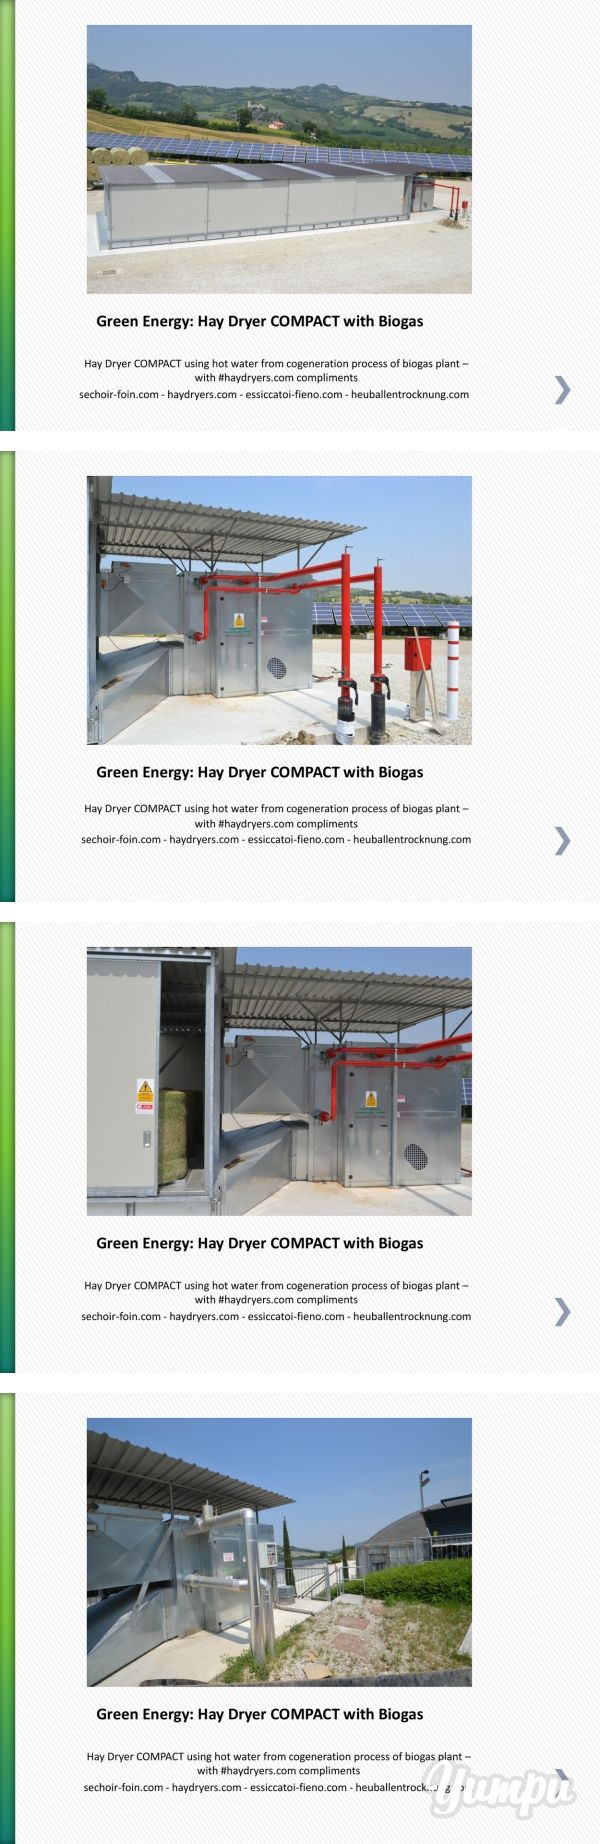 Green Energy: Hay Dryer COMPACT with Biogas - Magazine with 9 pages: Hay Dryer COMPACT using hot water from cogeneration process of biogas plant – with #haydryers.com compliments sechoir-foin.com - haydryers.com - essiccatoi-fieno.com - heuballentrocknung.com